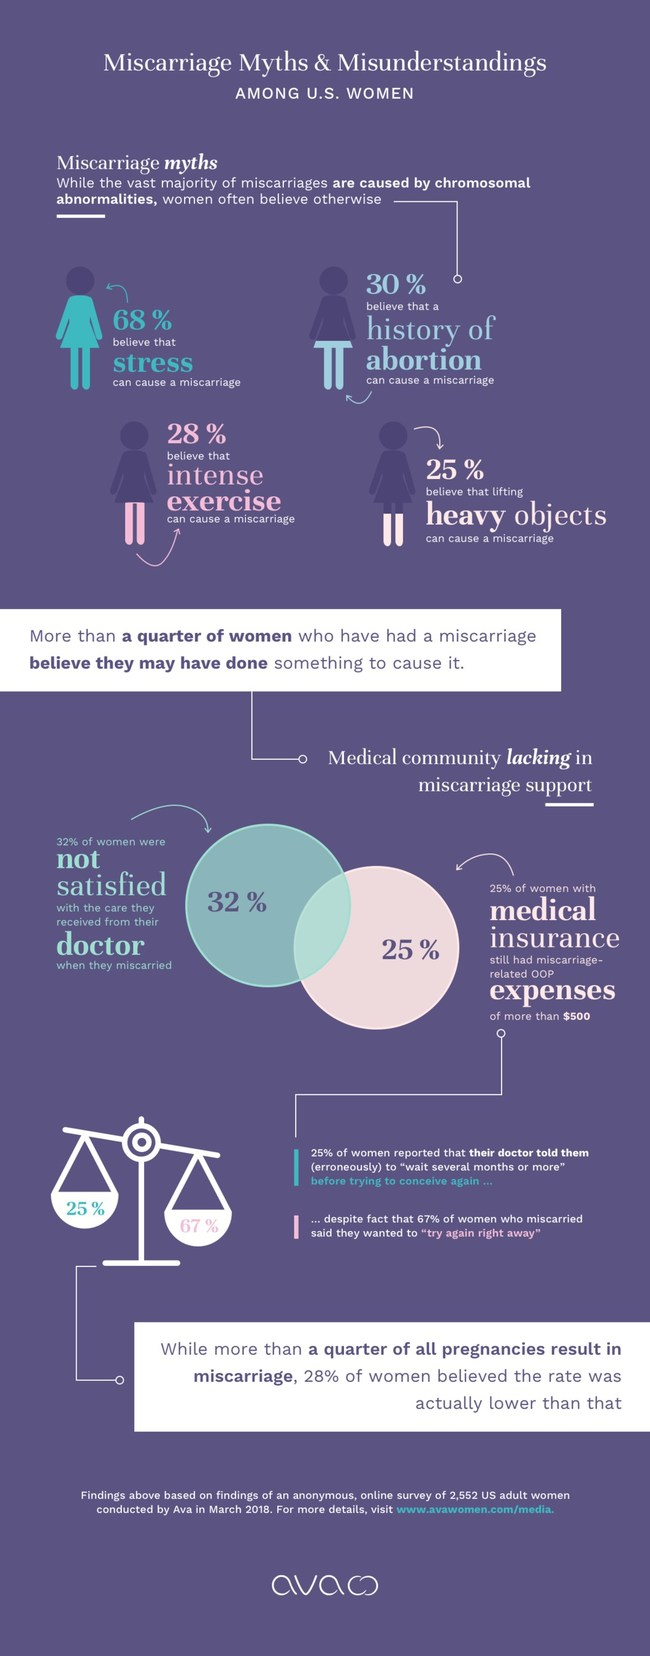 Ava surveyed more than 2,500 women about their experiences and beliefs about miscarriage